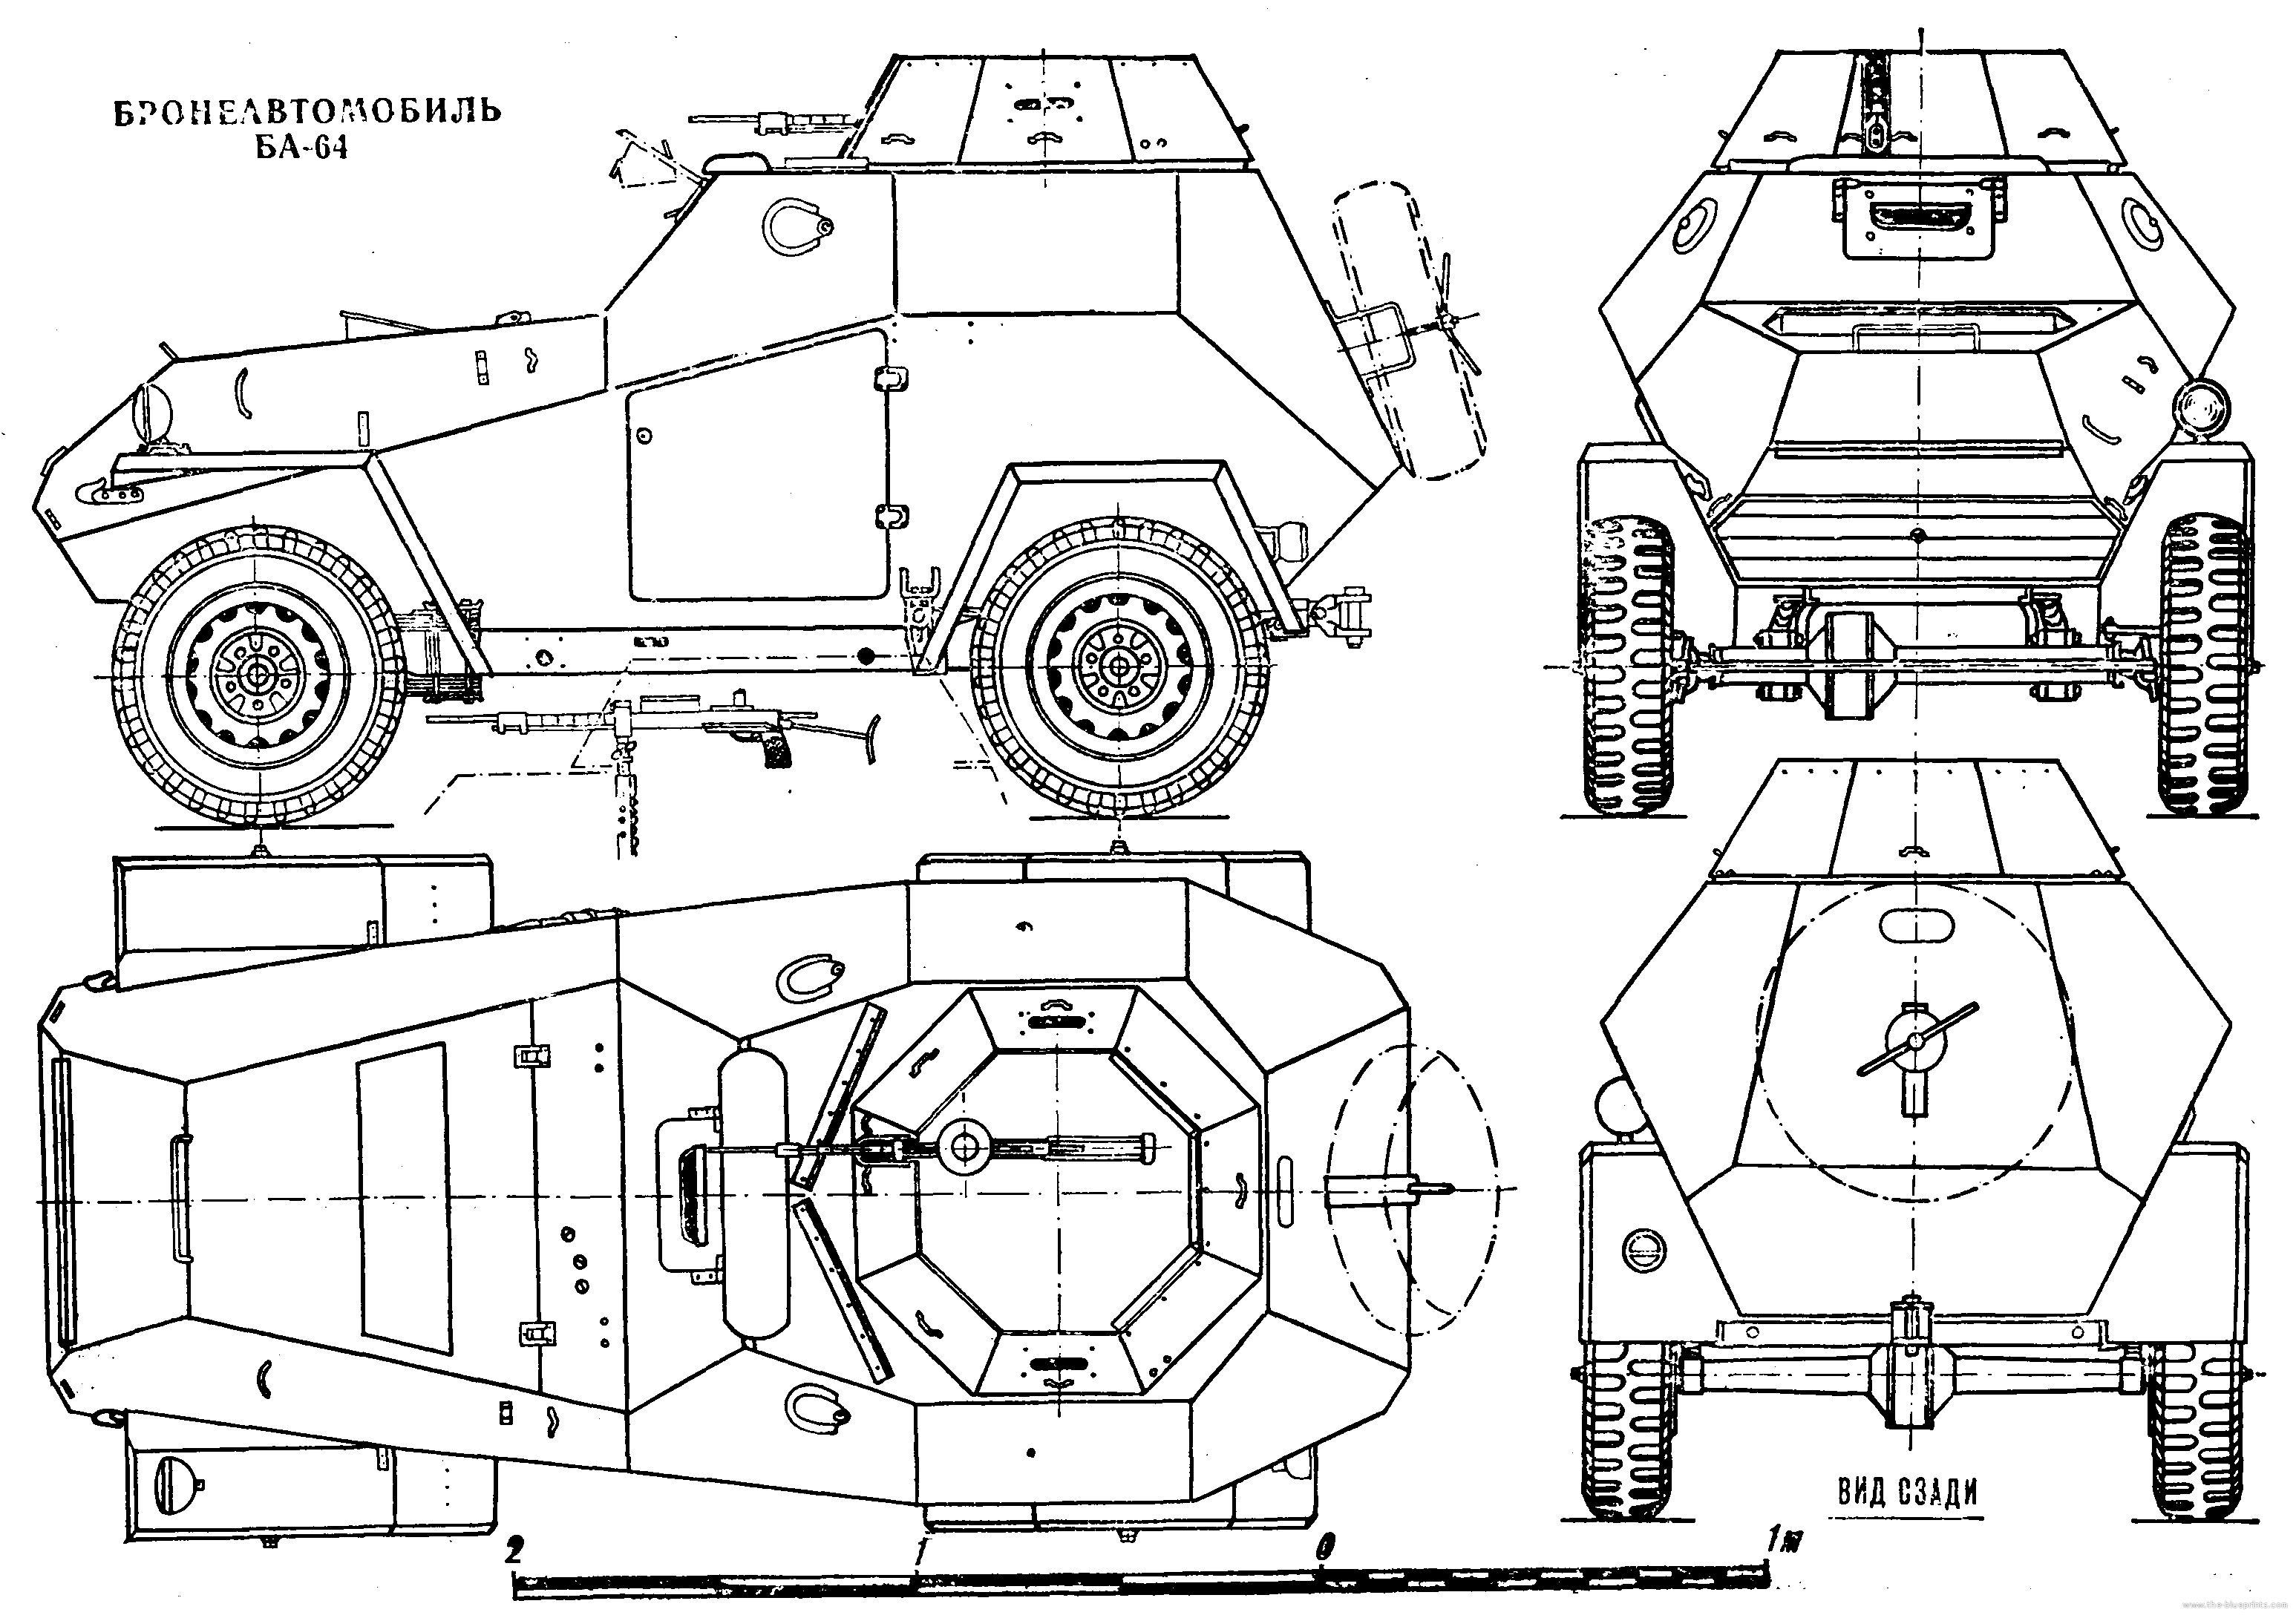 blueprints tanks russian tanks ba 64 mod 43 1958 Ford Cars ba 64 mod 43